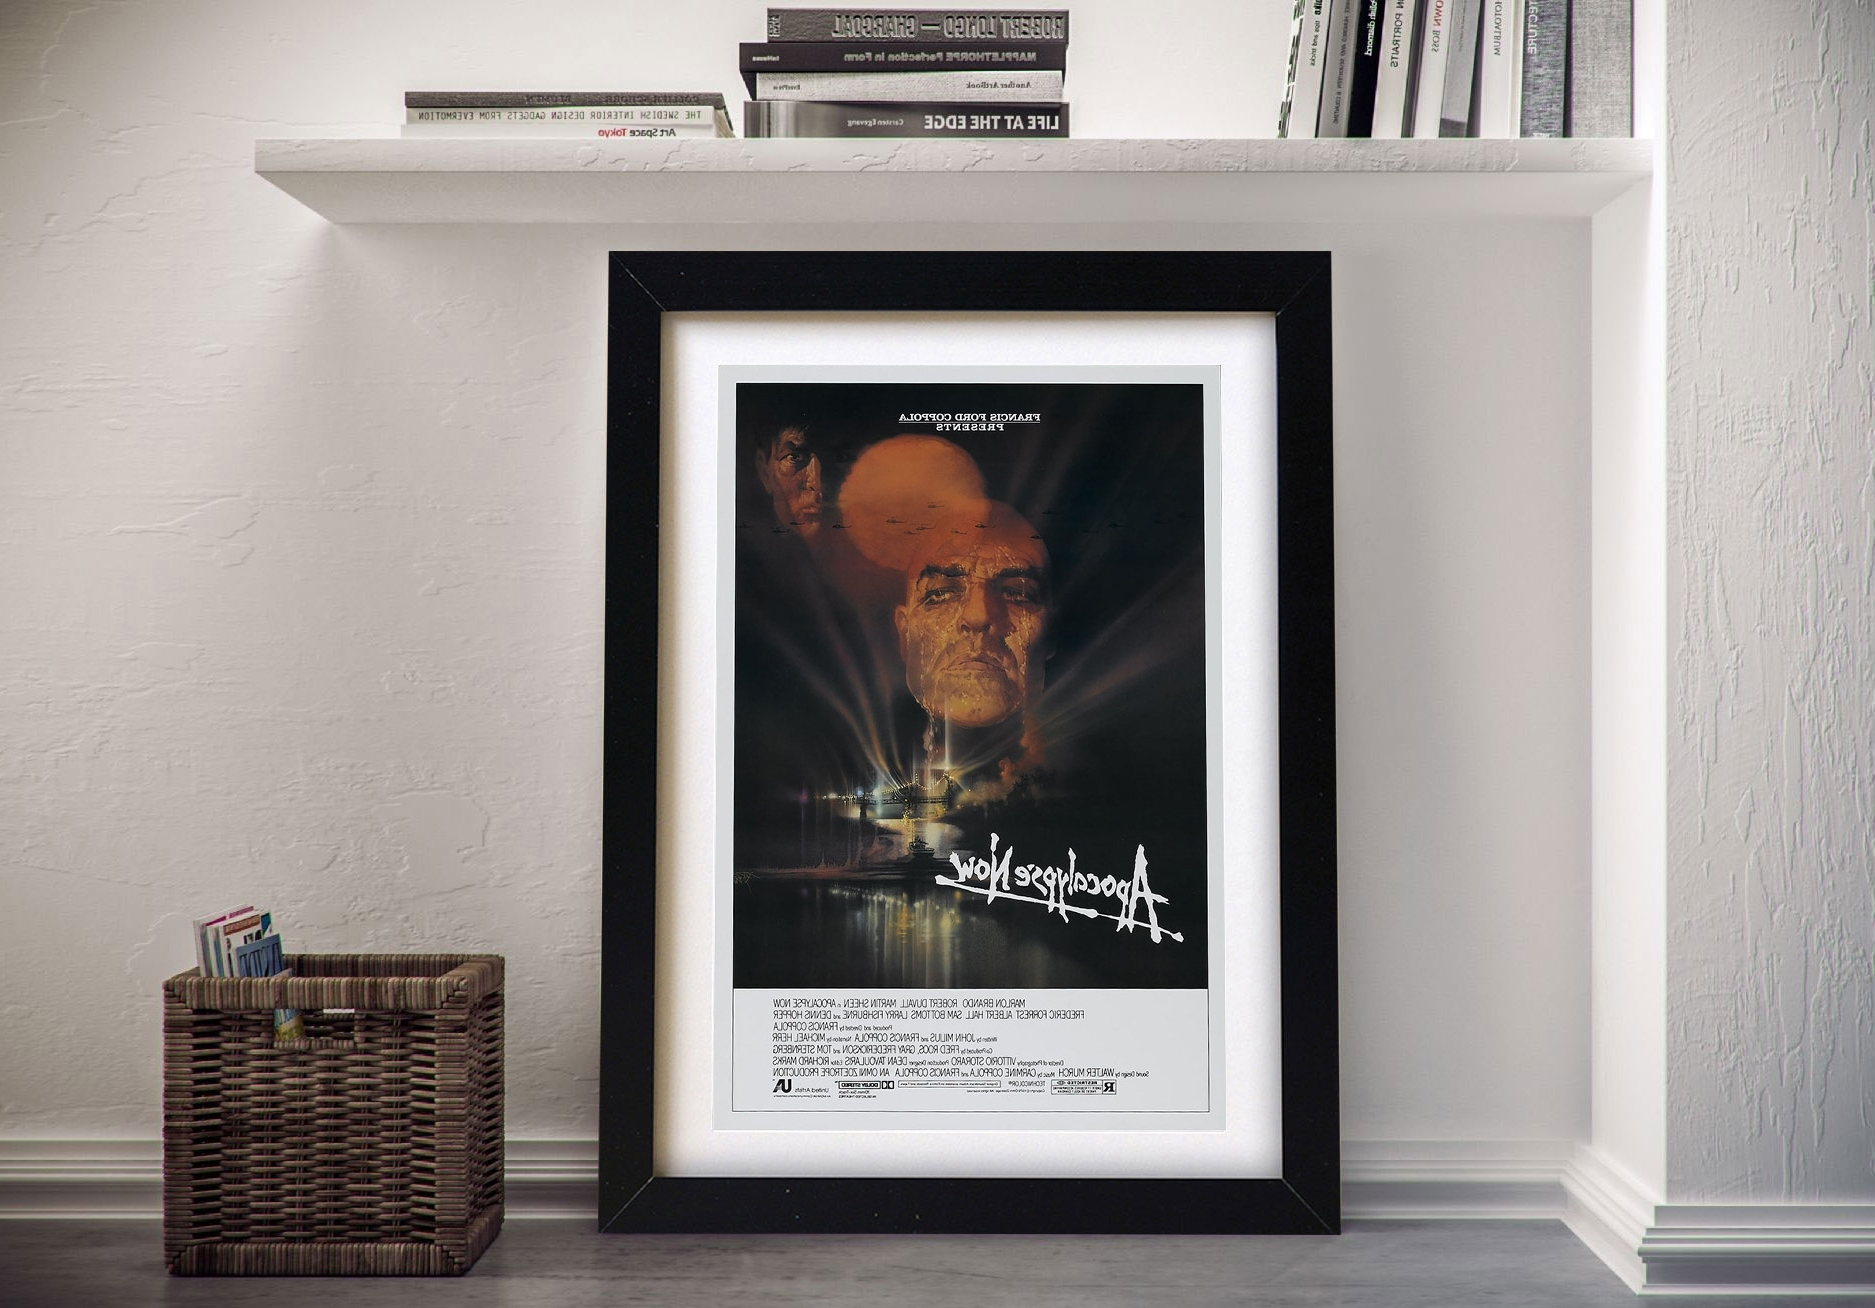 Apocalypse Now Movie Poster Print On Canvas Geelong Australia Within Most Up To Date Geelong Canvas Wall Art (View 2 of 15)